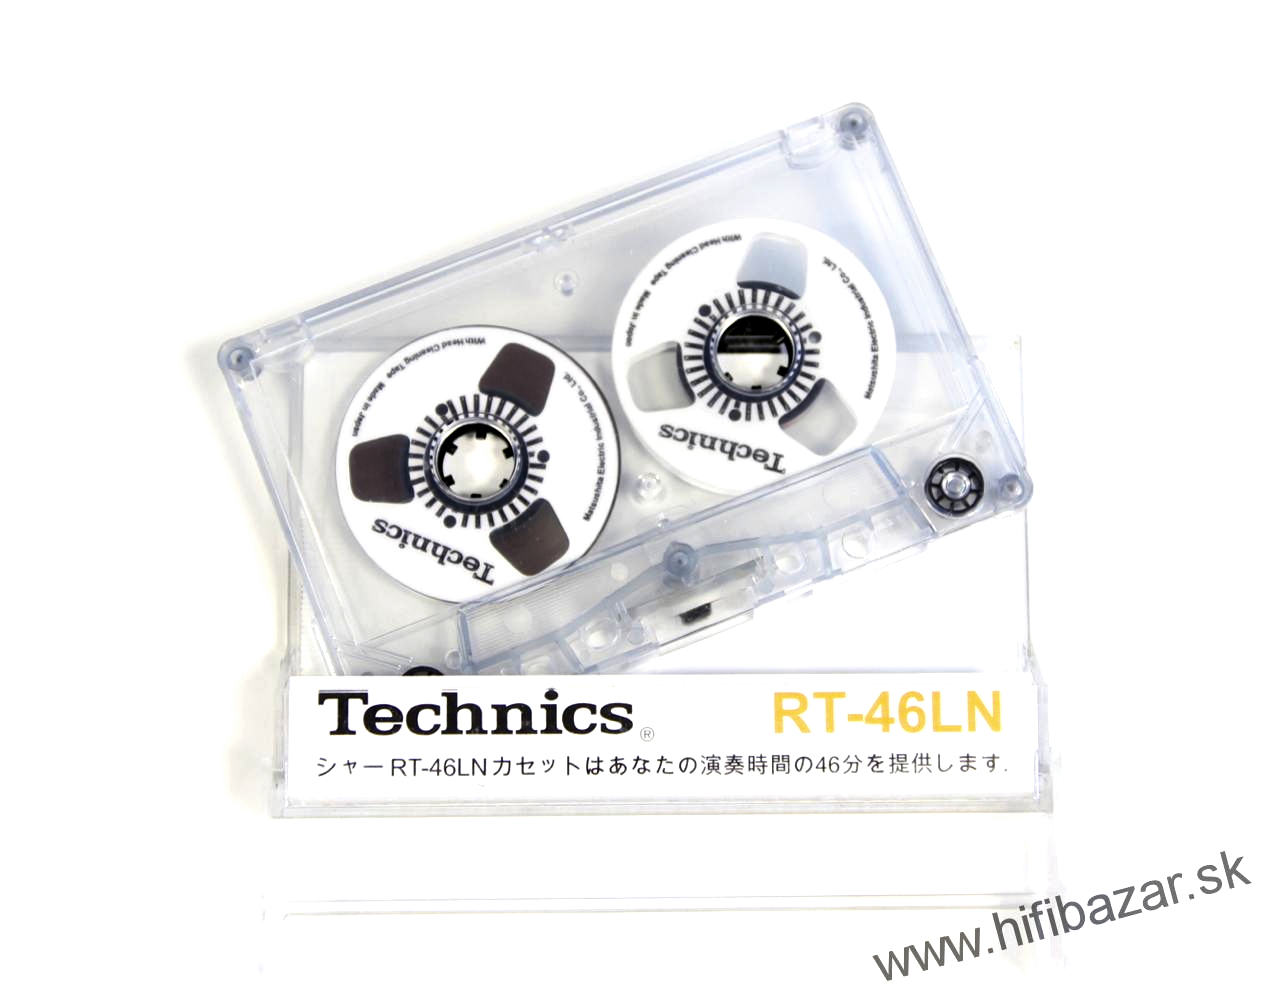 TECHNICS RT-46LN Reel To Reel